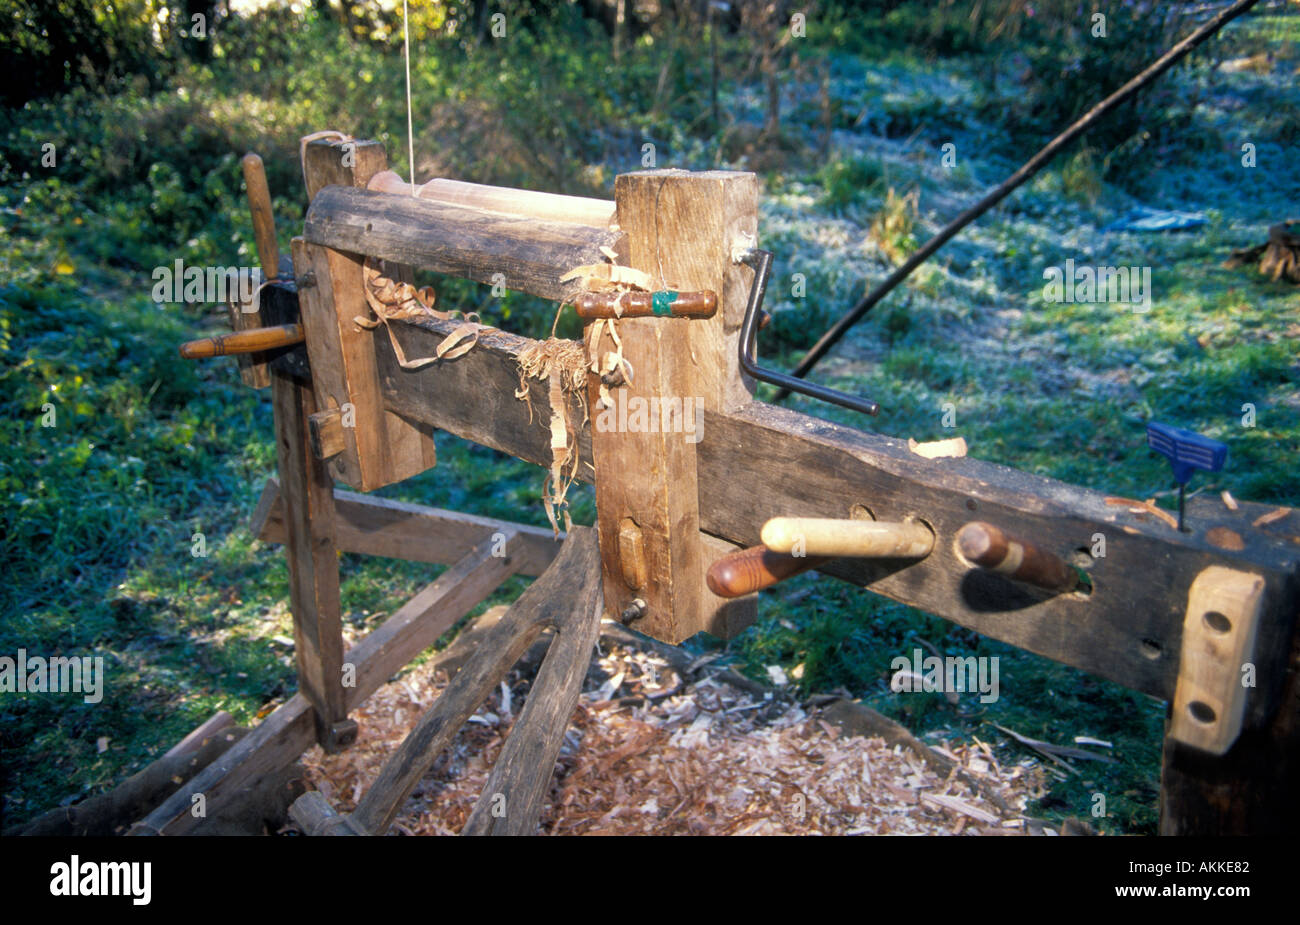 A pole lathe used by Mike Abbott a coppice craftsman - Stock Image